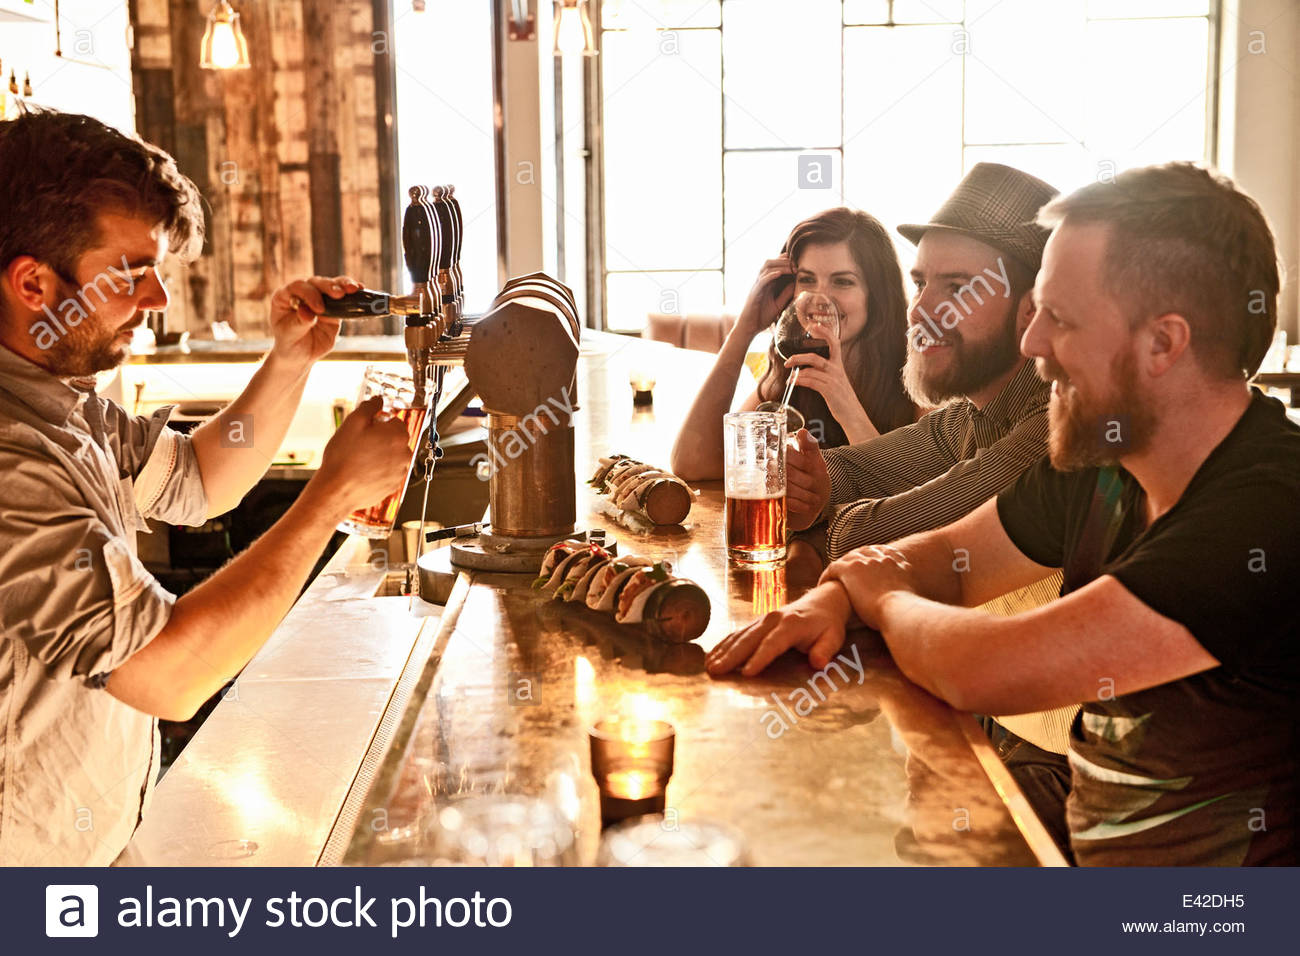 Friends drinking beer at hipster bar - Stock Image